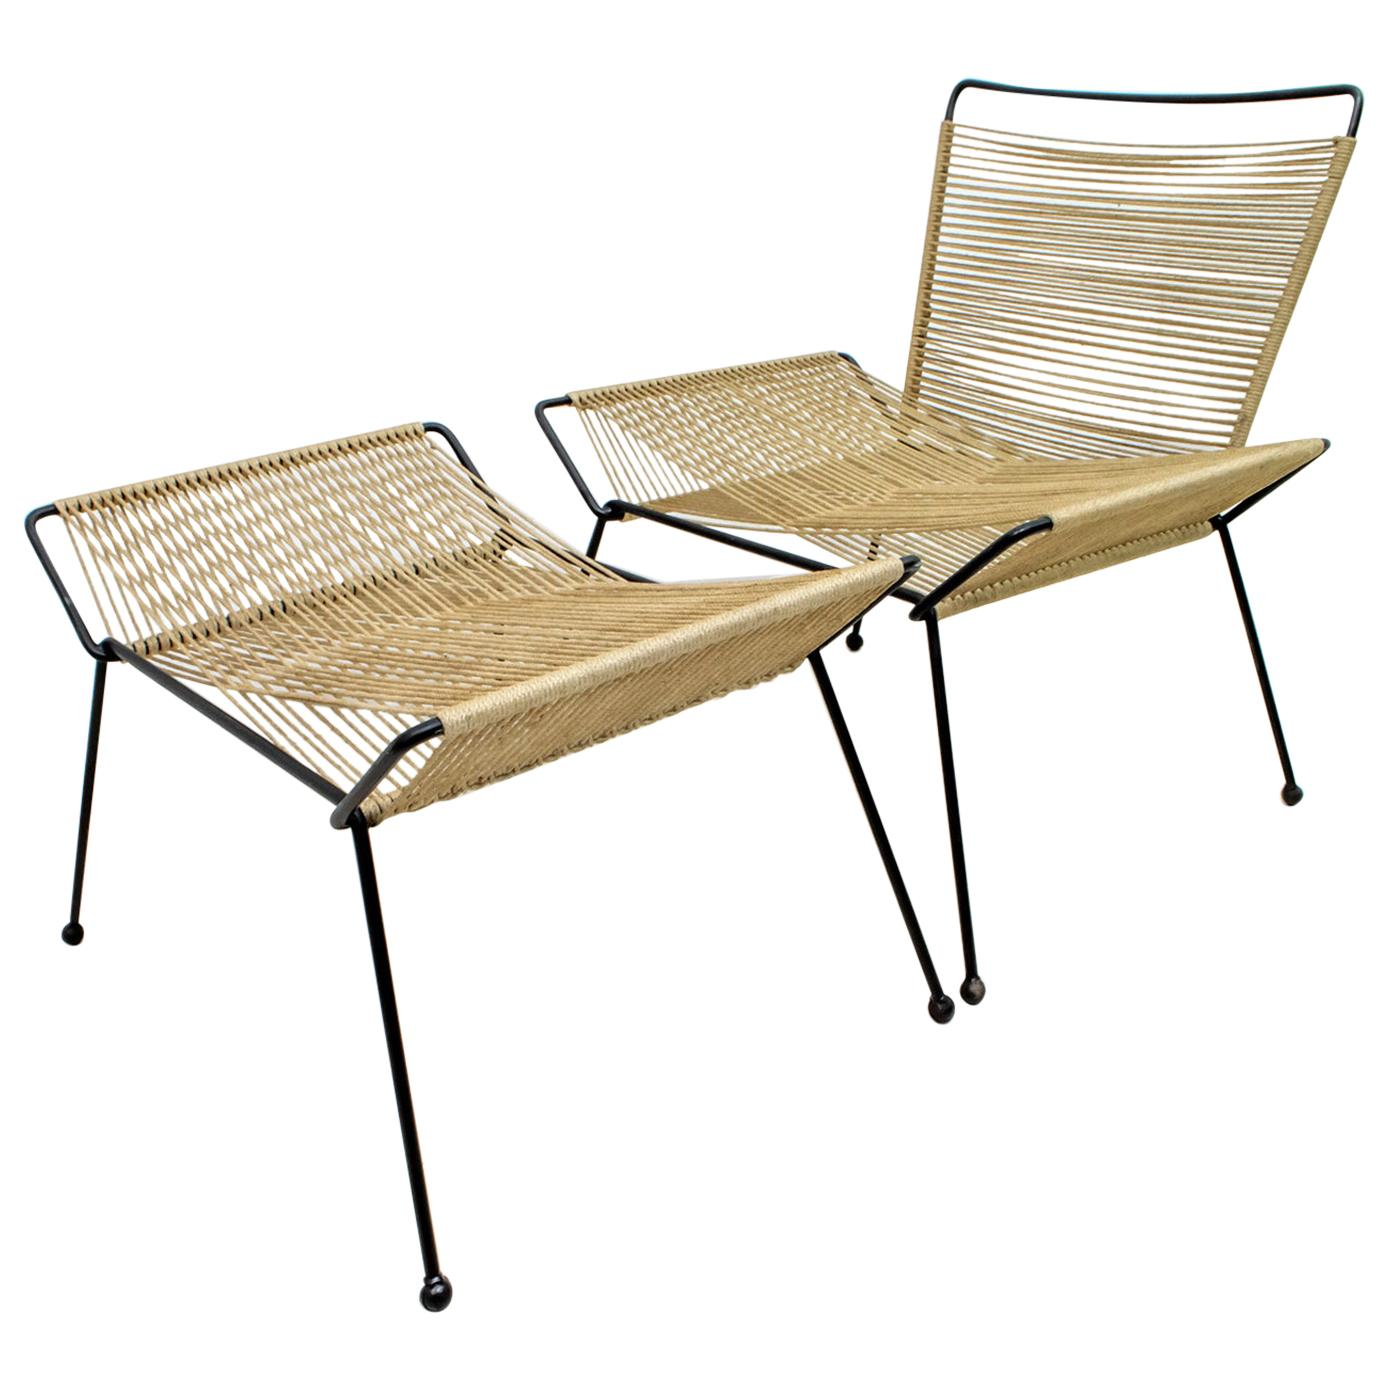 Mid-Century Modern Italian Rope Armchair and Footrest, 1960s